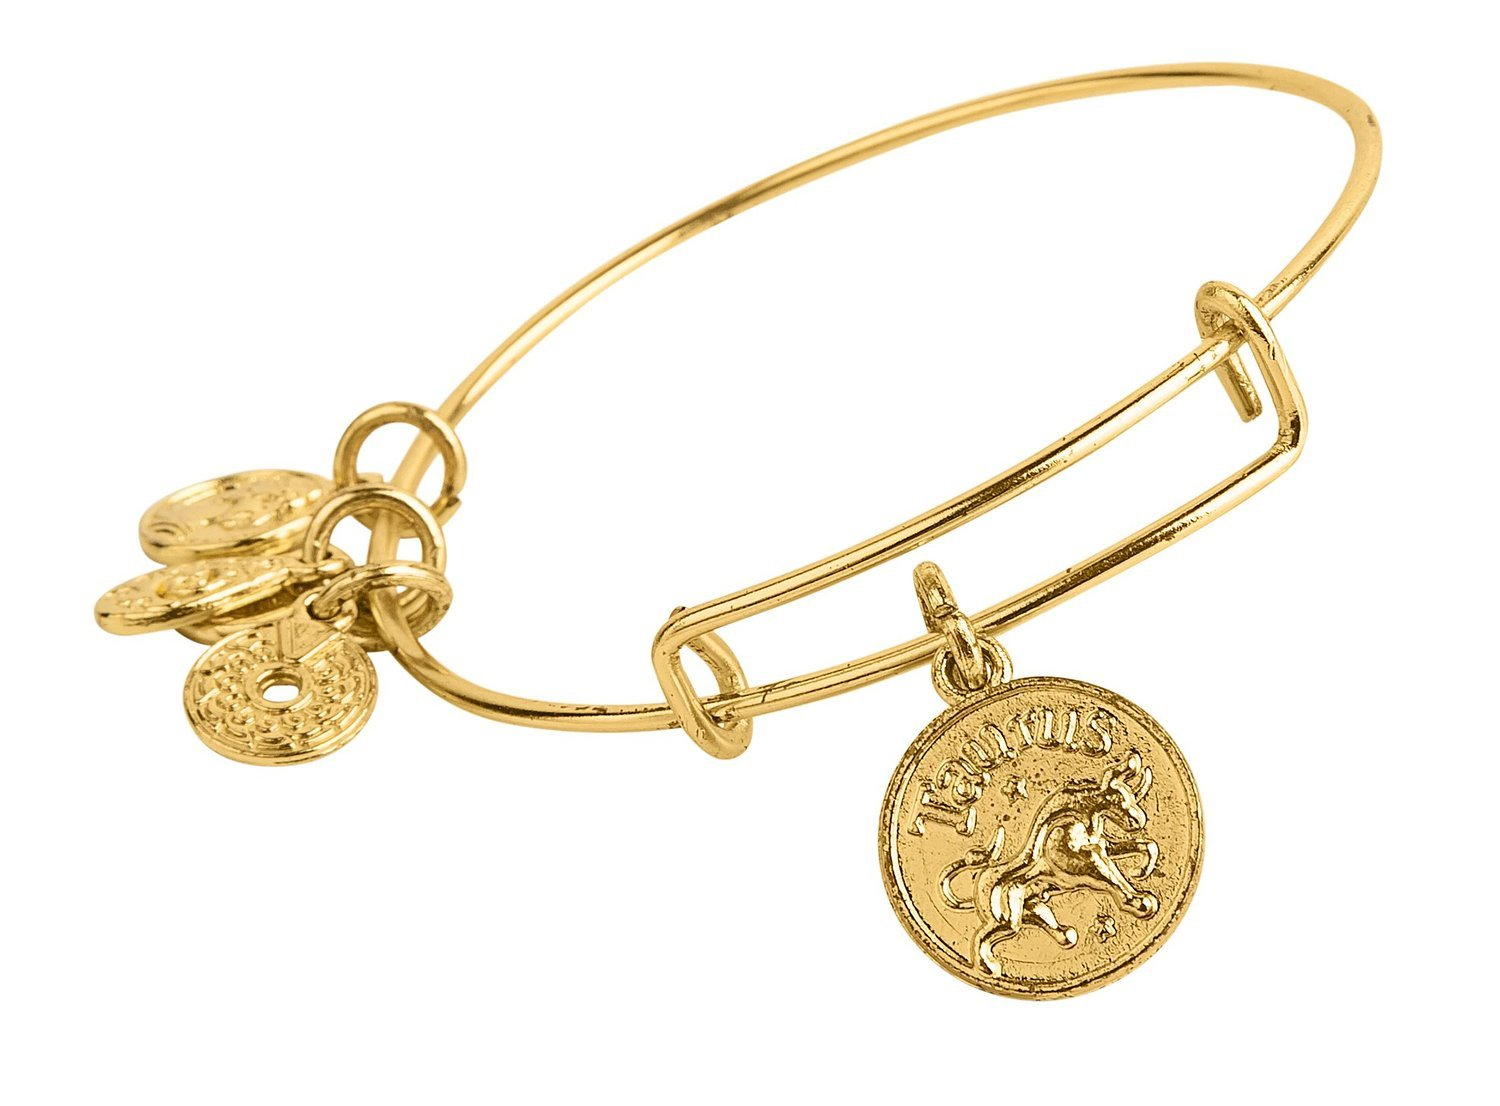 Primary image for Taurus Pendant Bangle Expandable Bracelet Shiny Gold Tone